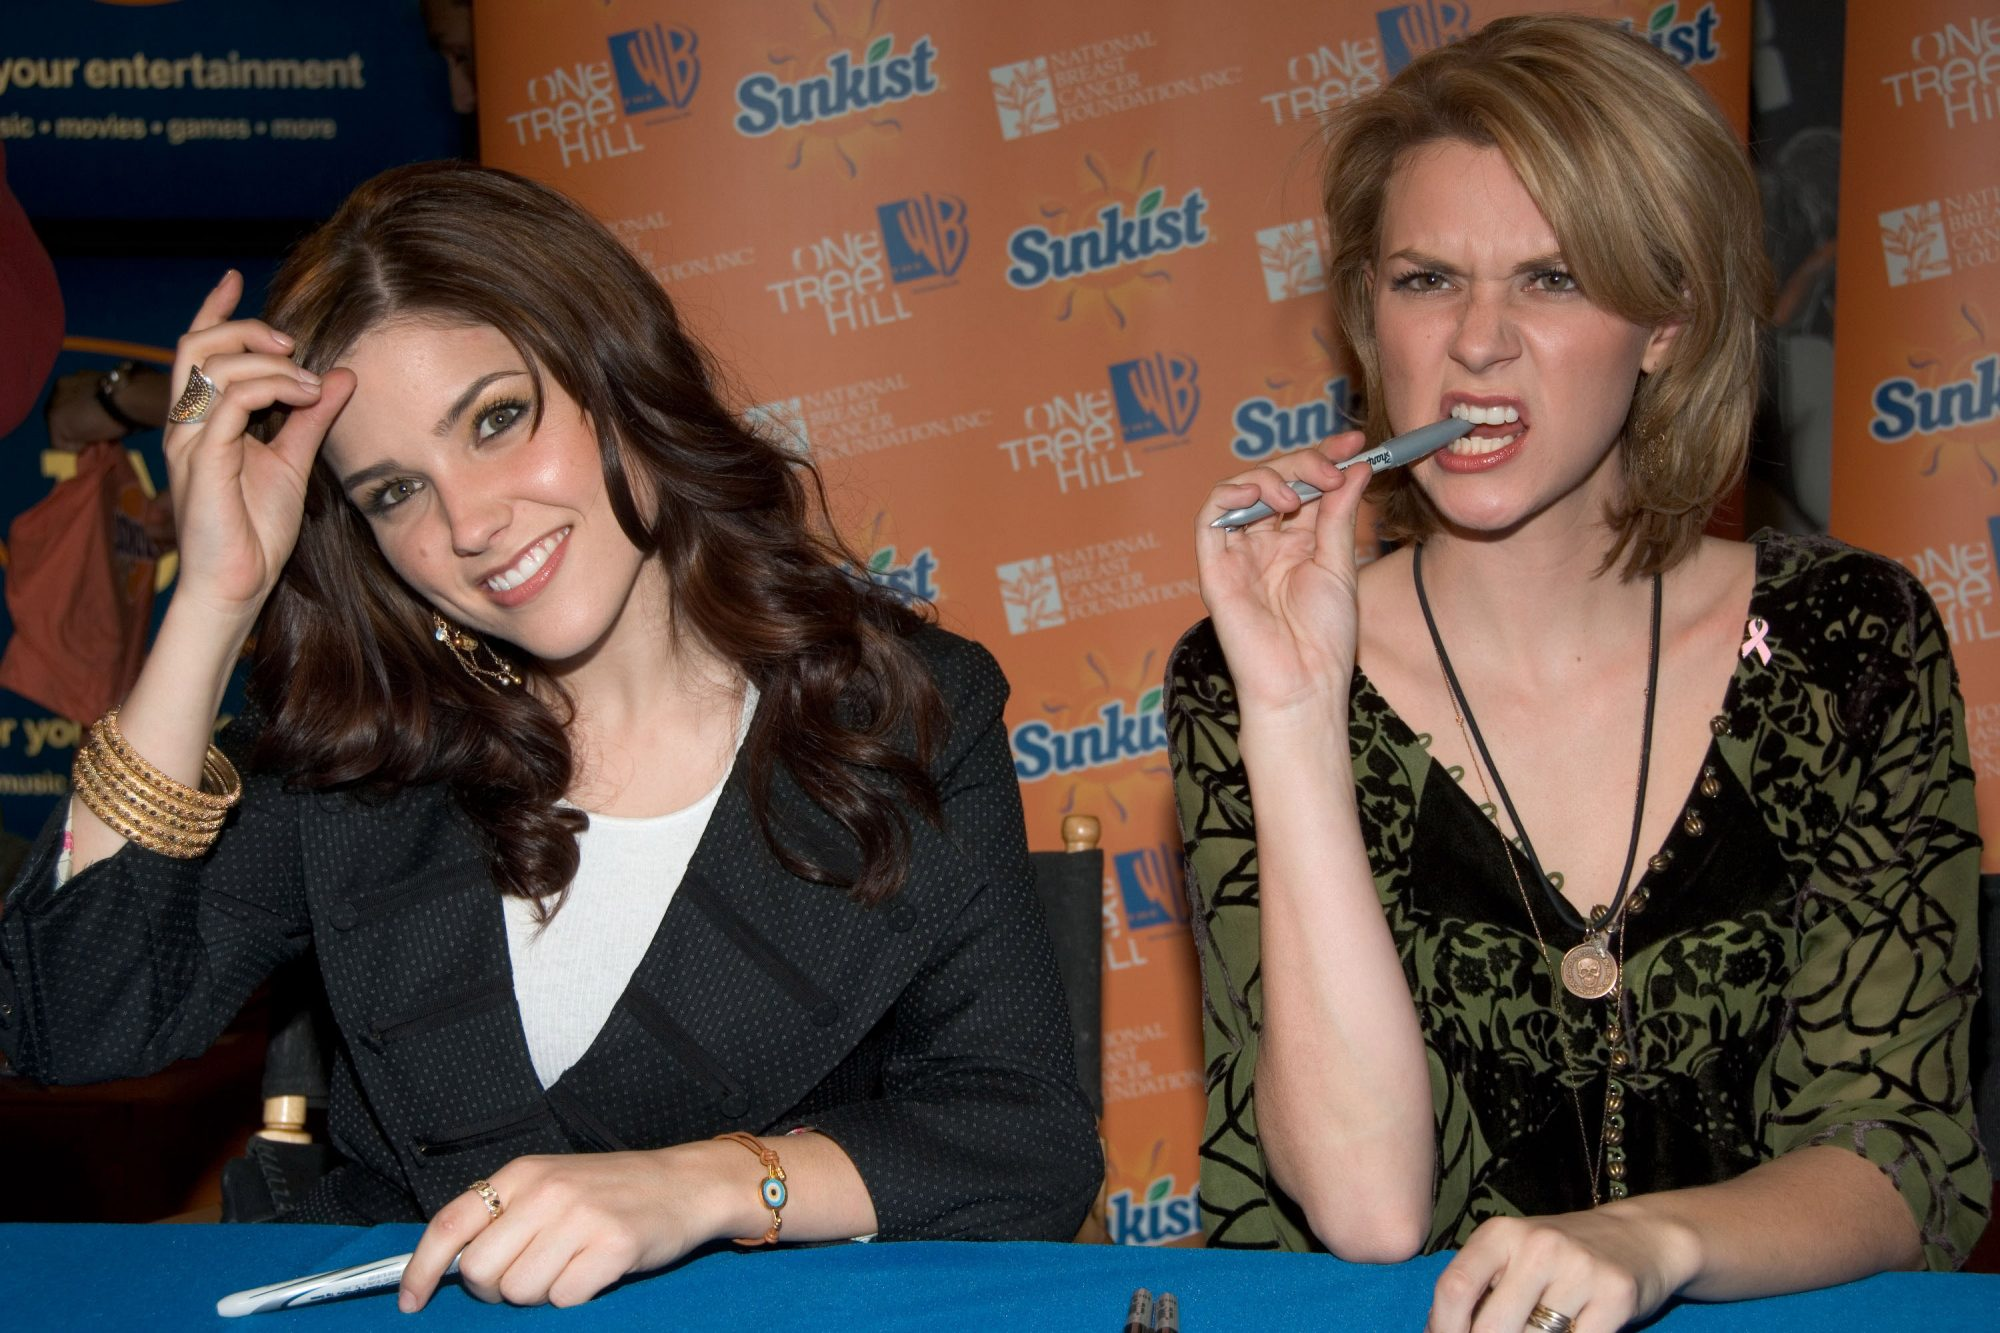 The Cast of One Tree Hill Appears at FYE in New York City - February 7, 2006